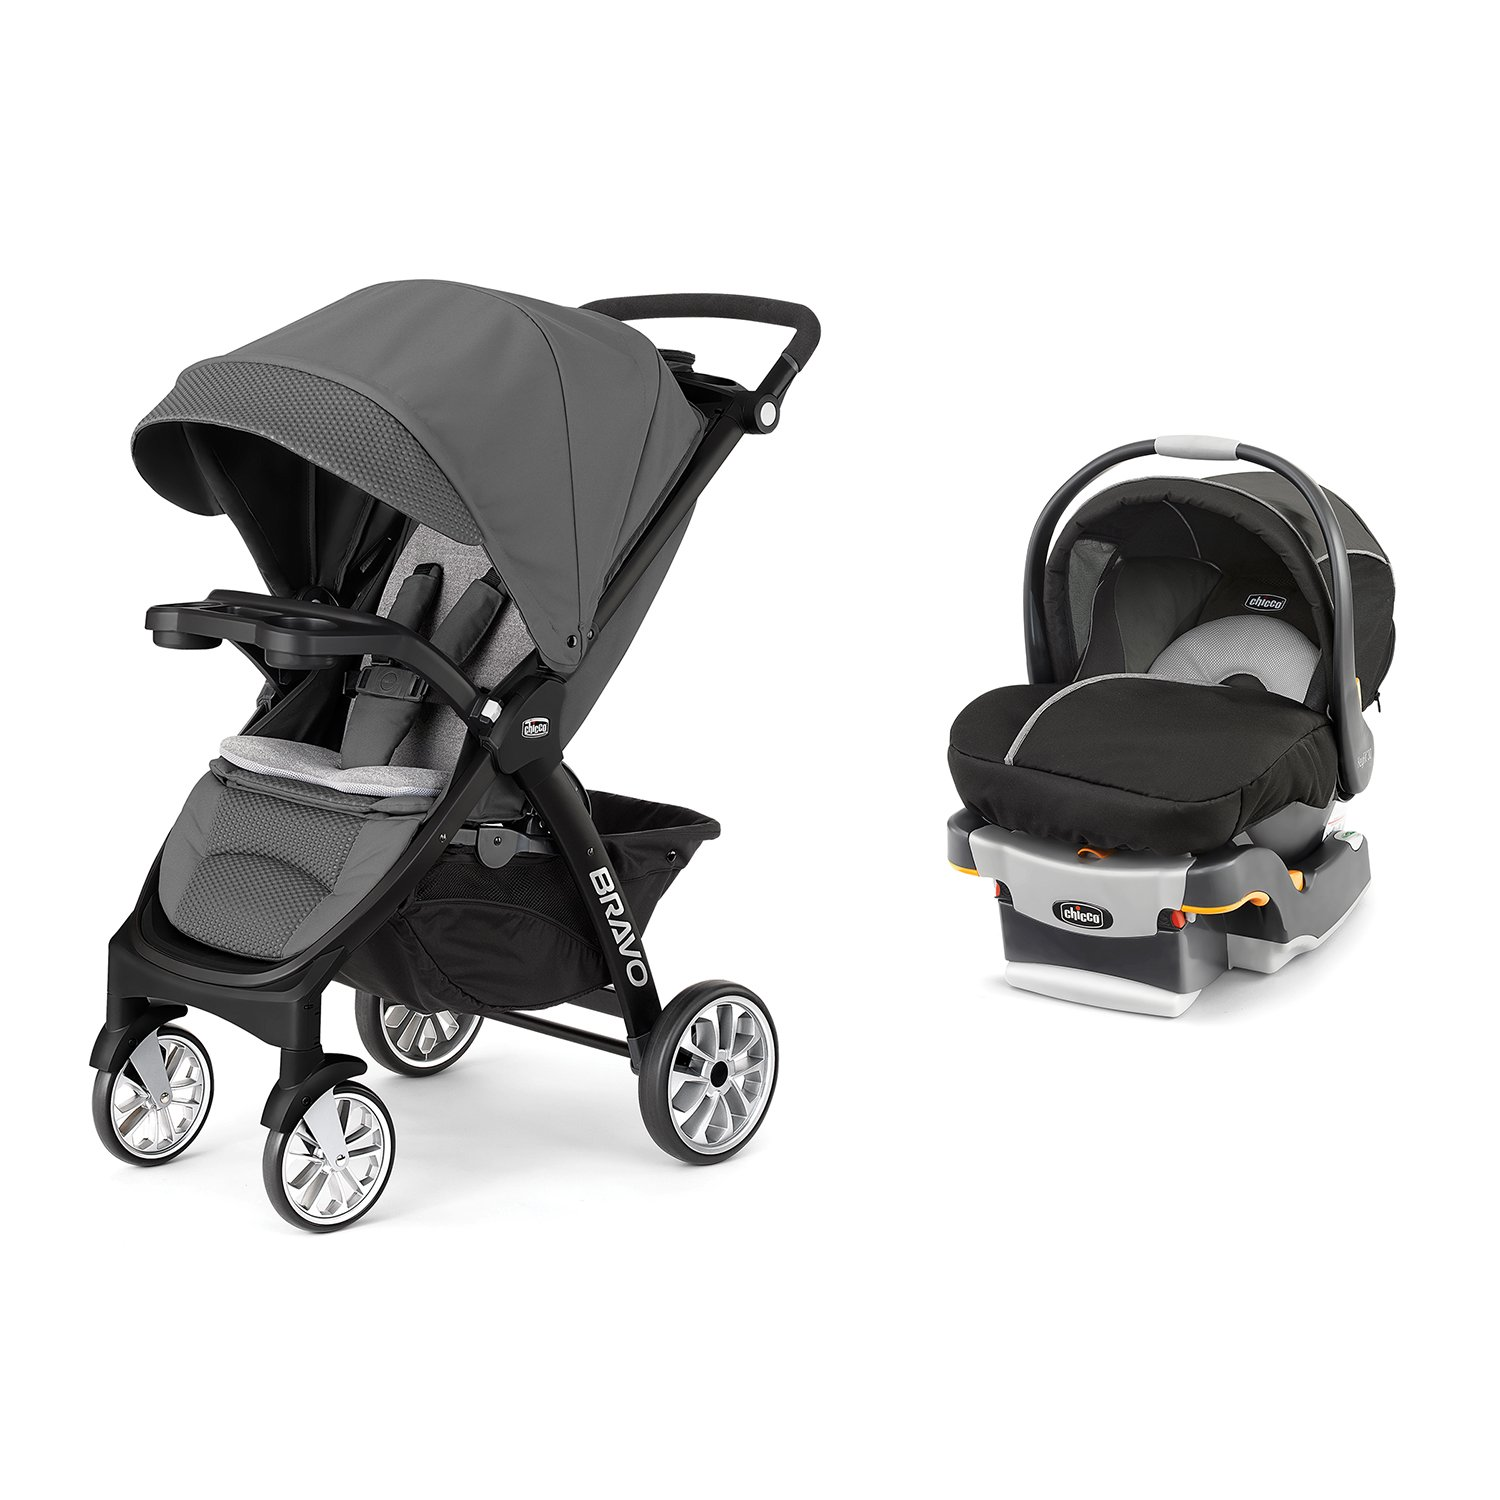 Amazon Chicco 3 in 1 Bravo LE Stroller KeyFit 30 Magic Car Seat & Base Travel System Baby